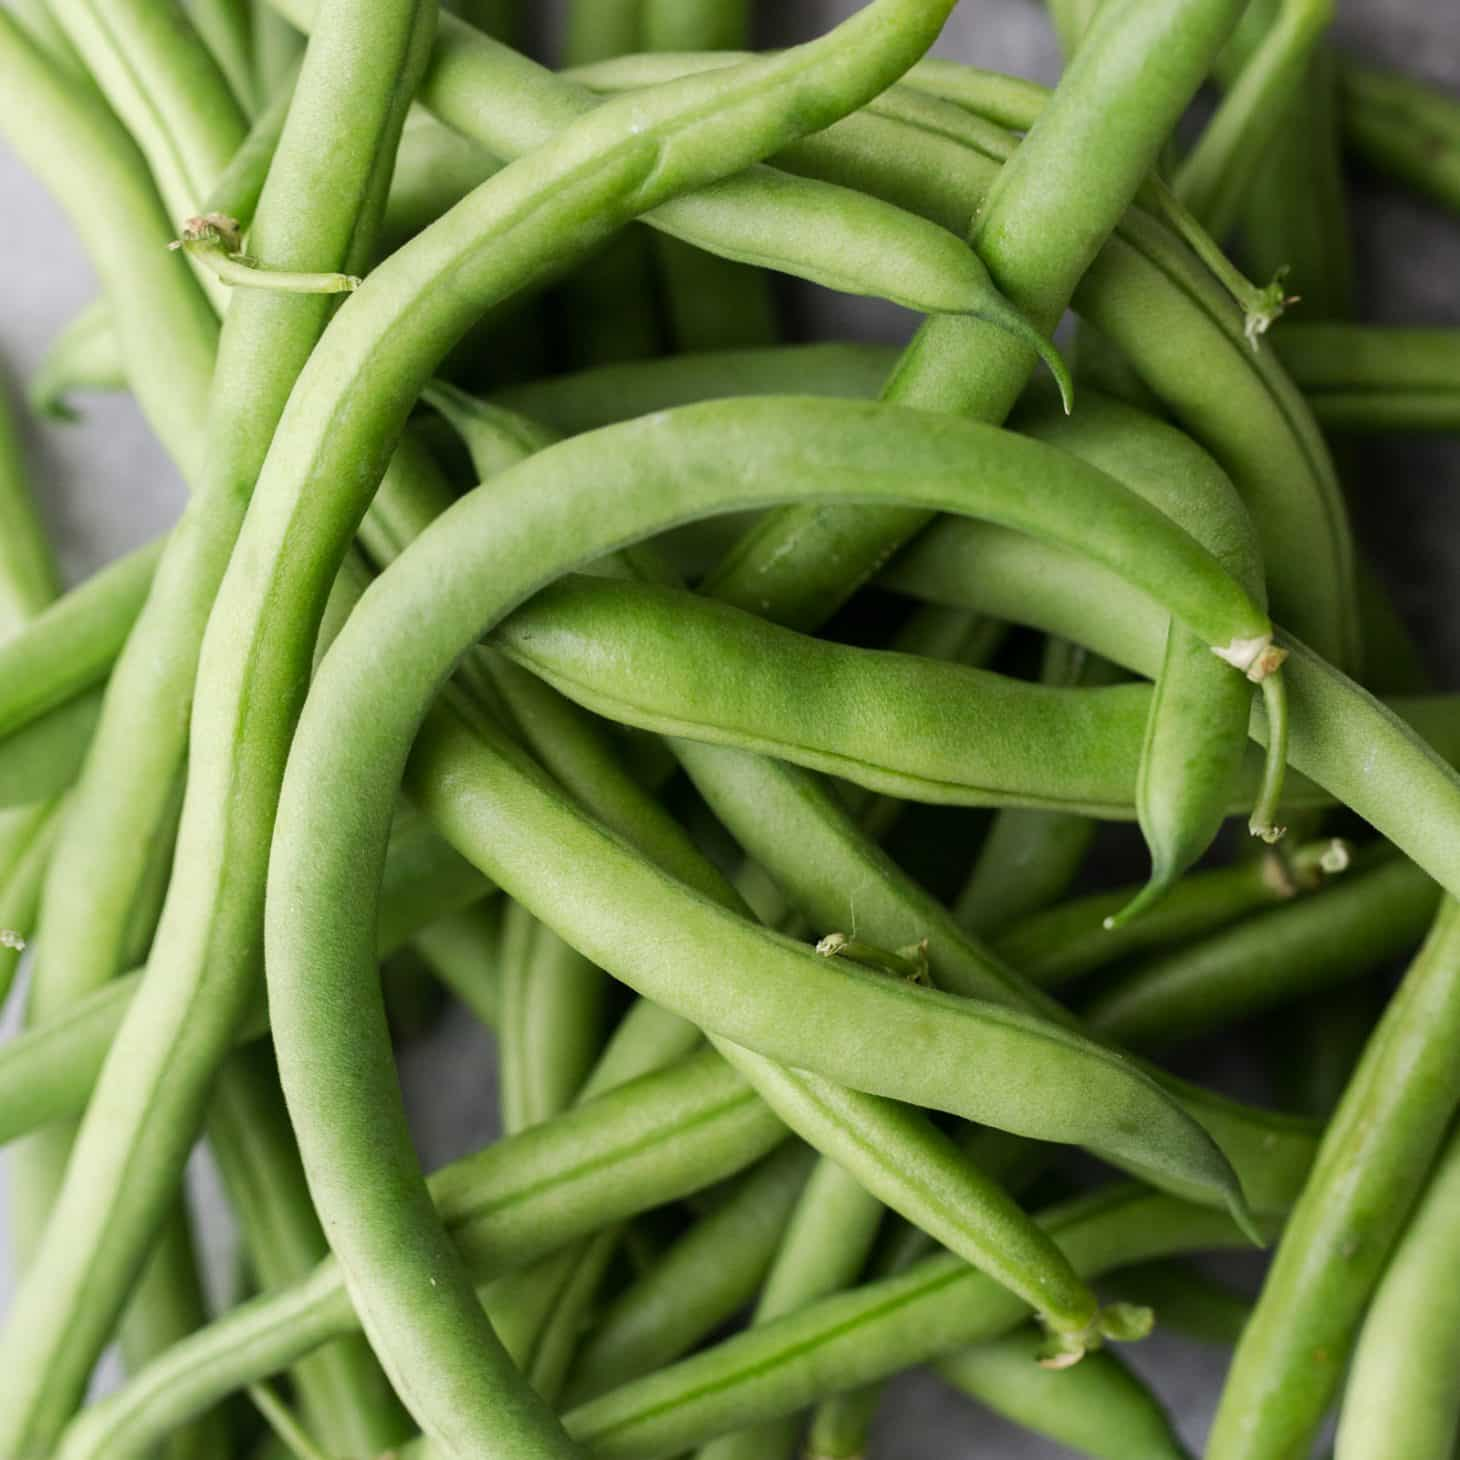 Green Beans | Explore an Ingredient